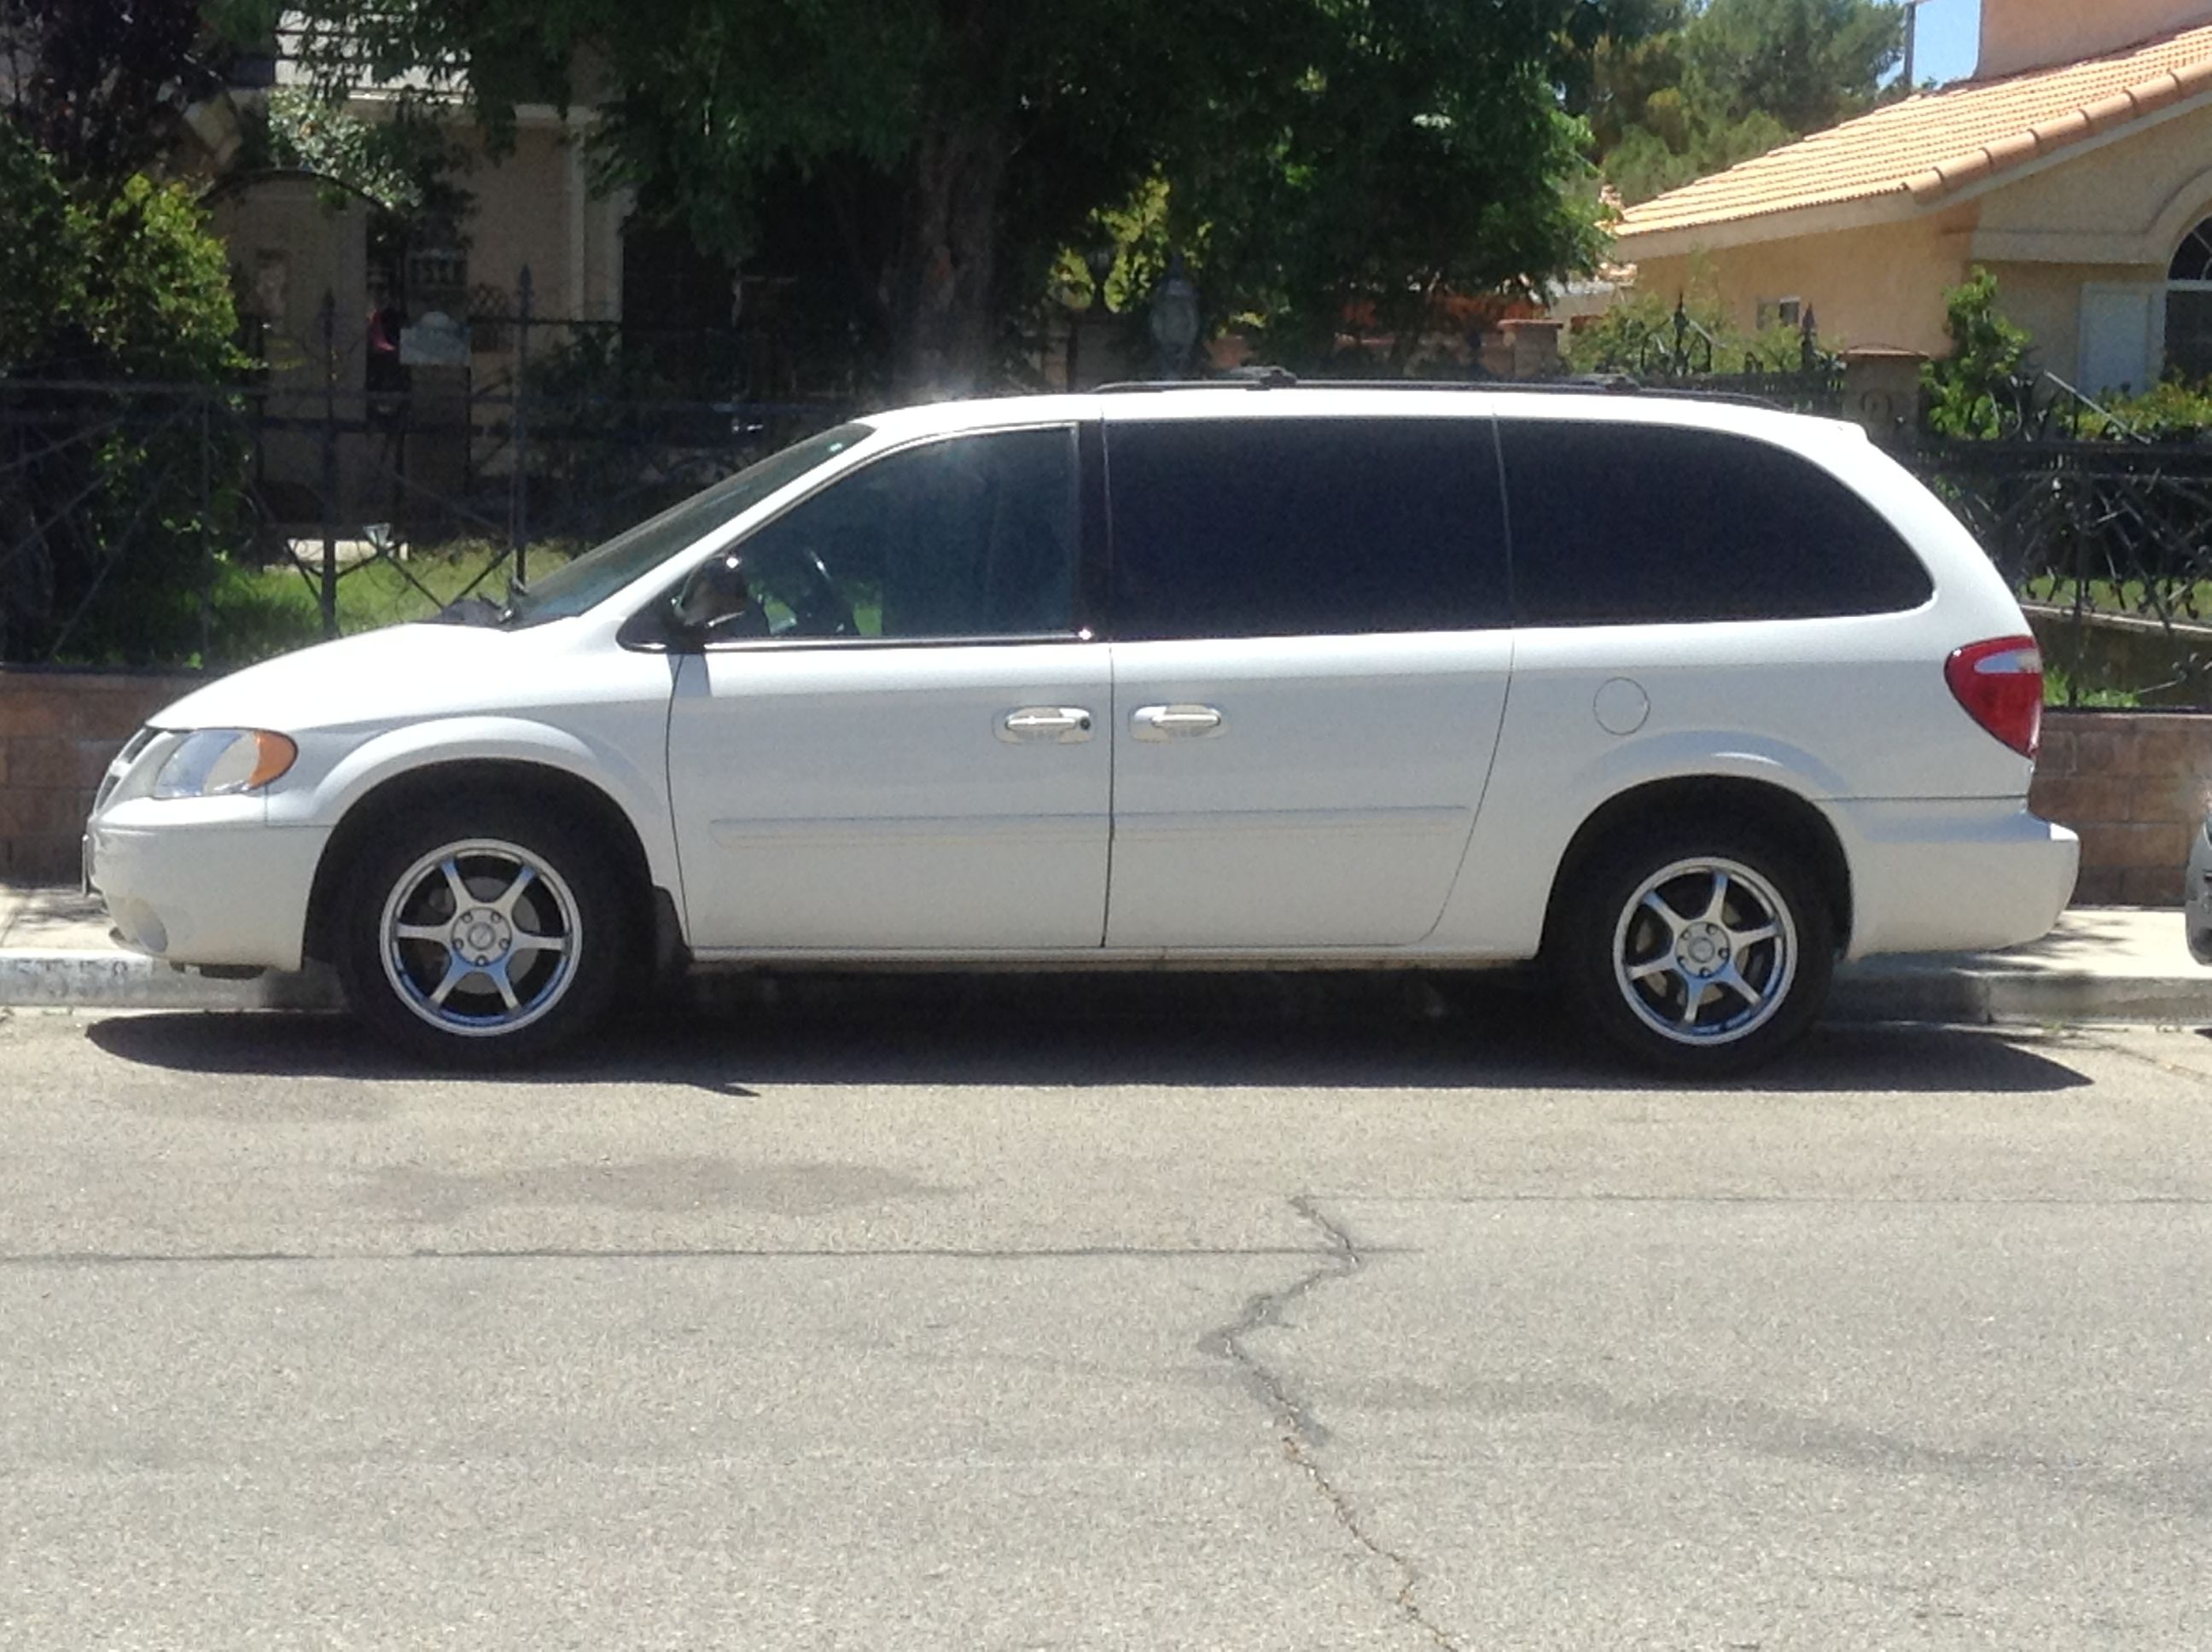 2006 Dodge Grand Caravan Sxt 7750 00 Obo Low Miles Clean